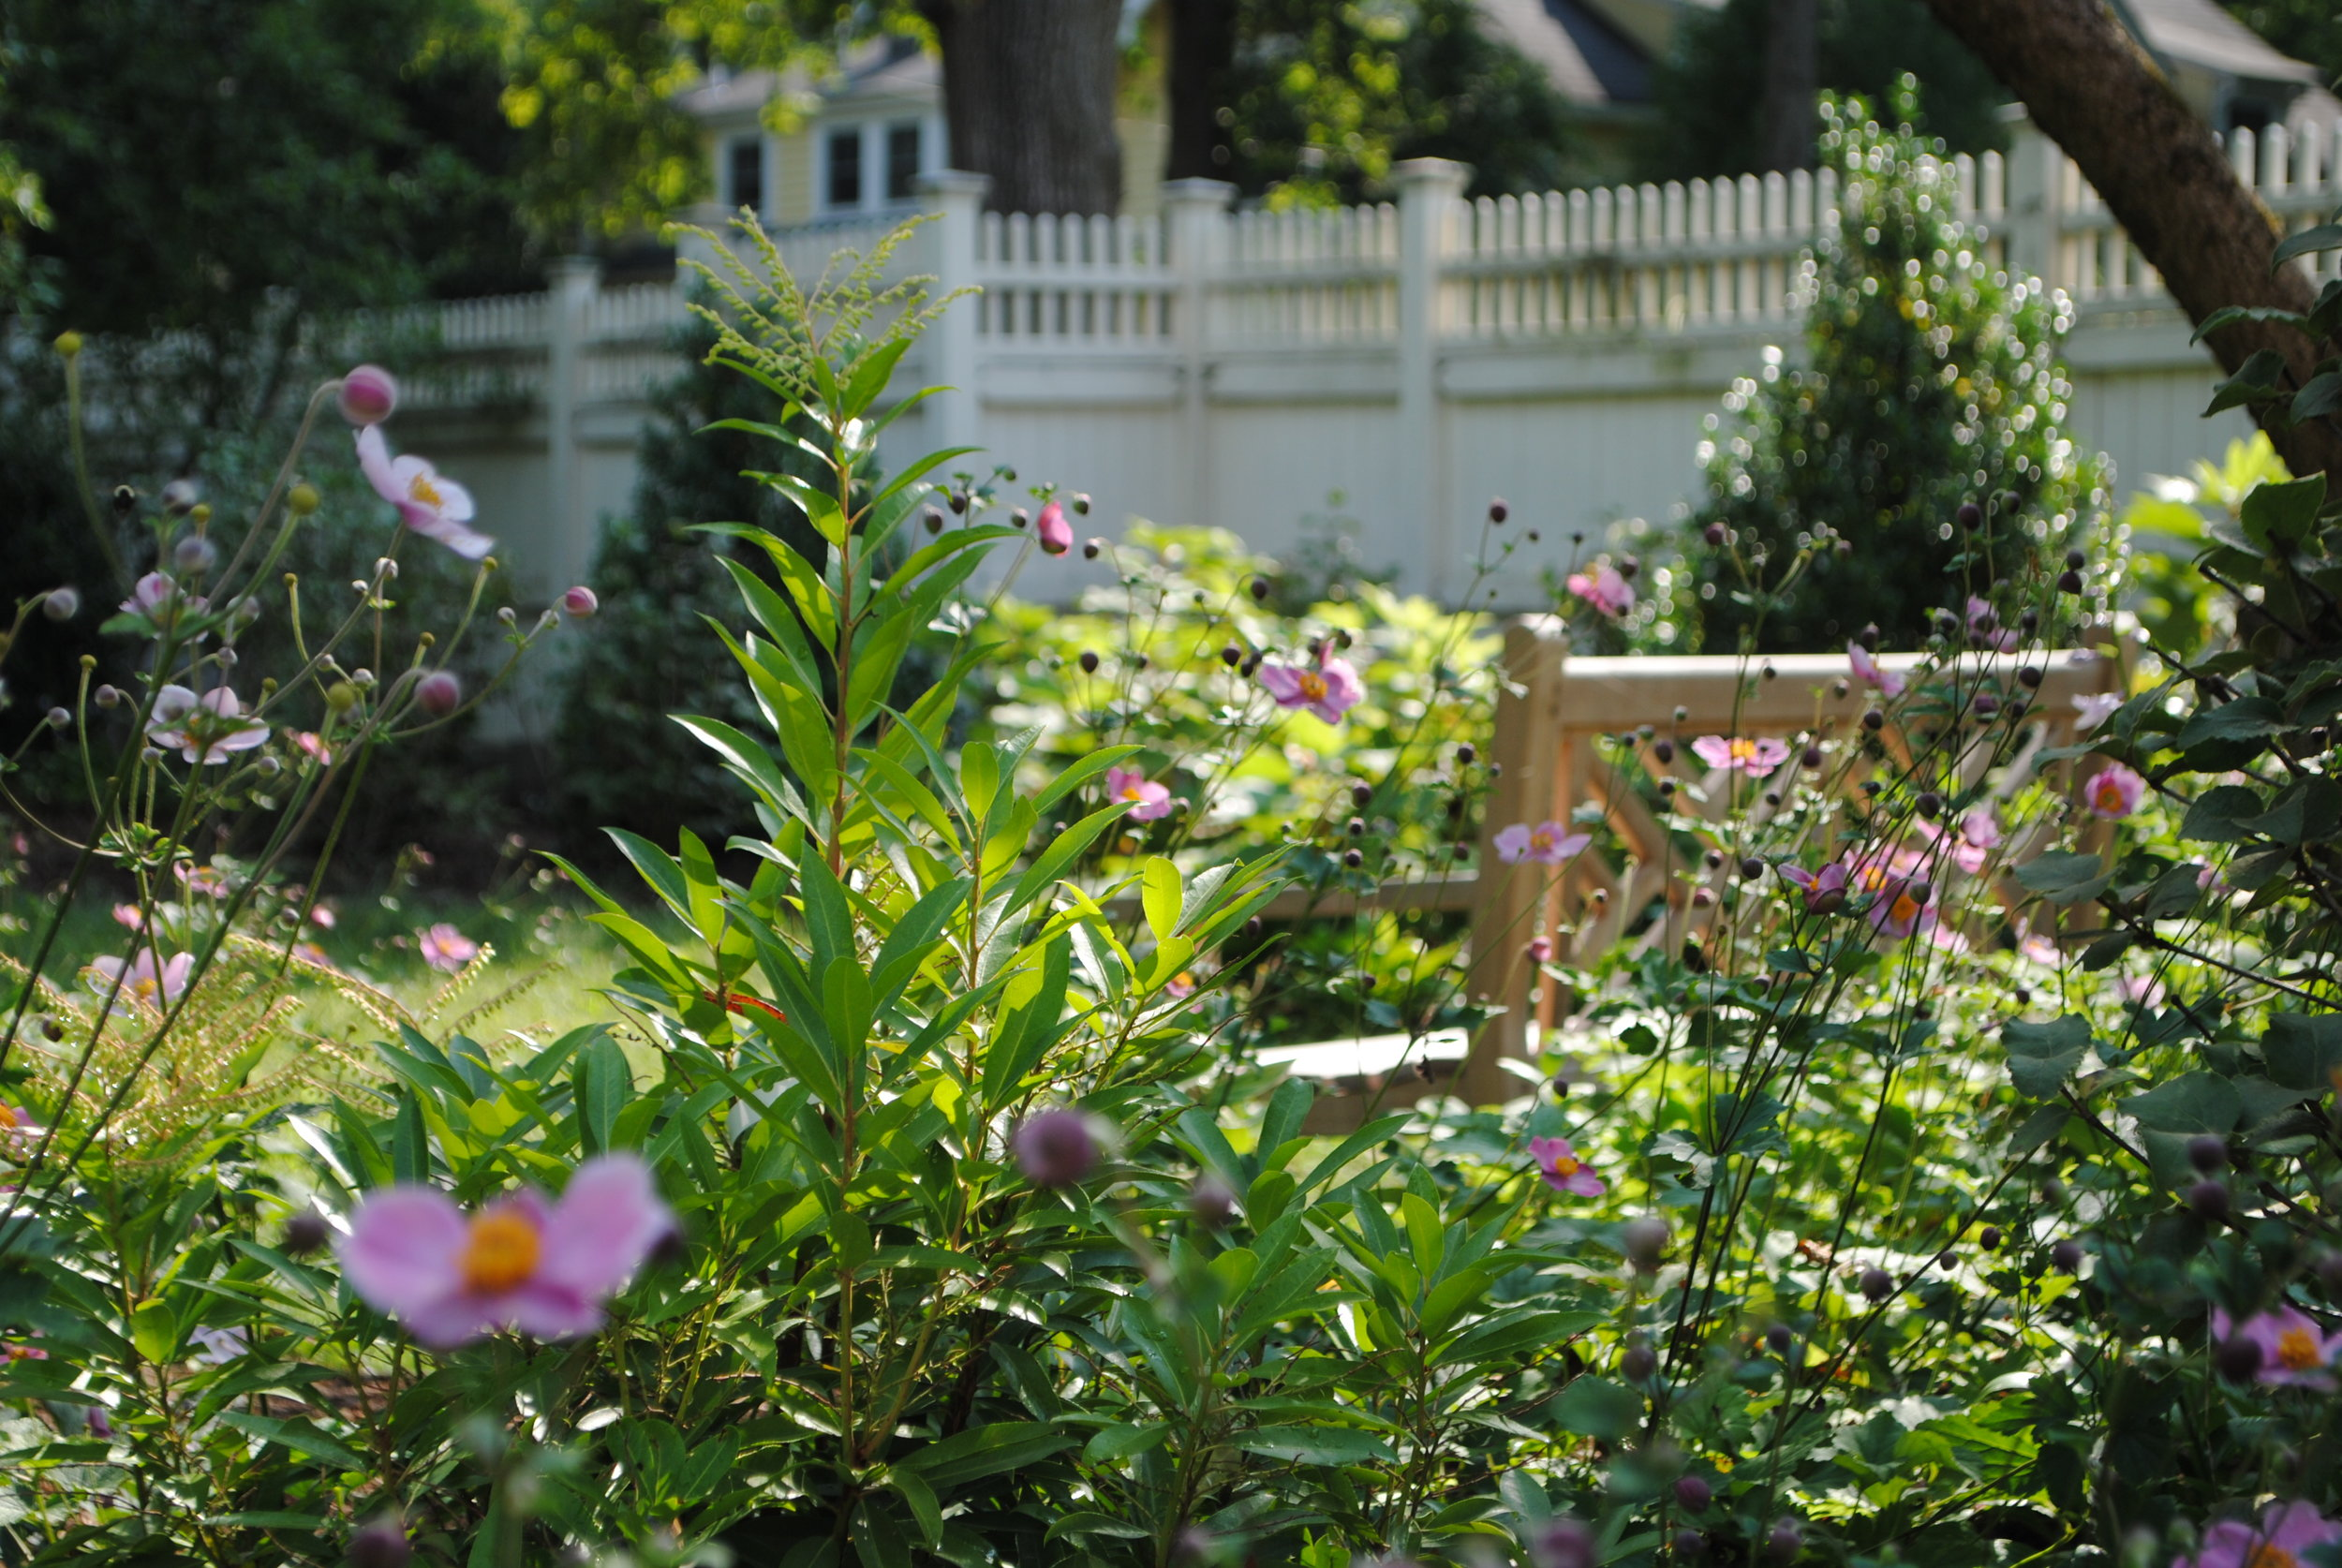 A backyard formally filled with lawn and many invasive plants is cleared out and rejuvenated with new shrubs, trees and flowers.